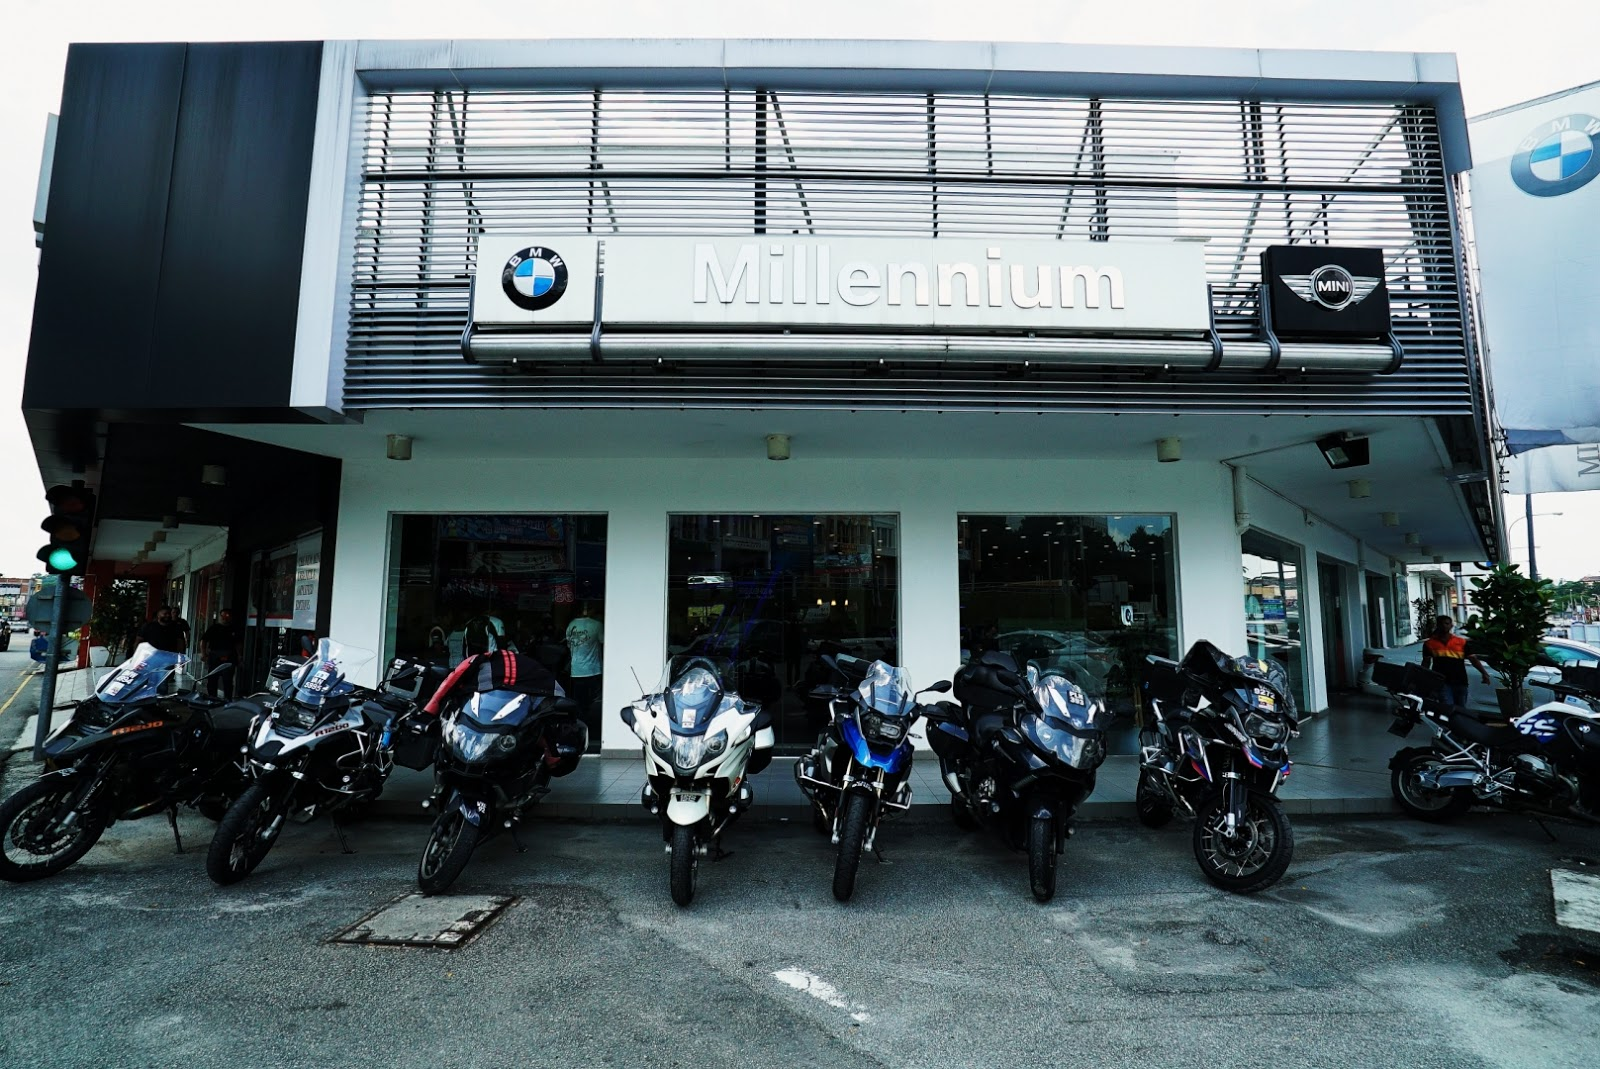 Motoring Malaysia Motorcycles Millennium Welt Opens New Bmw The Top Line Of Bikes Motorrad Via Their Authorised Dealers Had Recently Officially Opened First Ever Showroom In Seremban